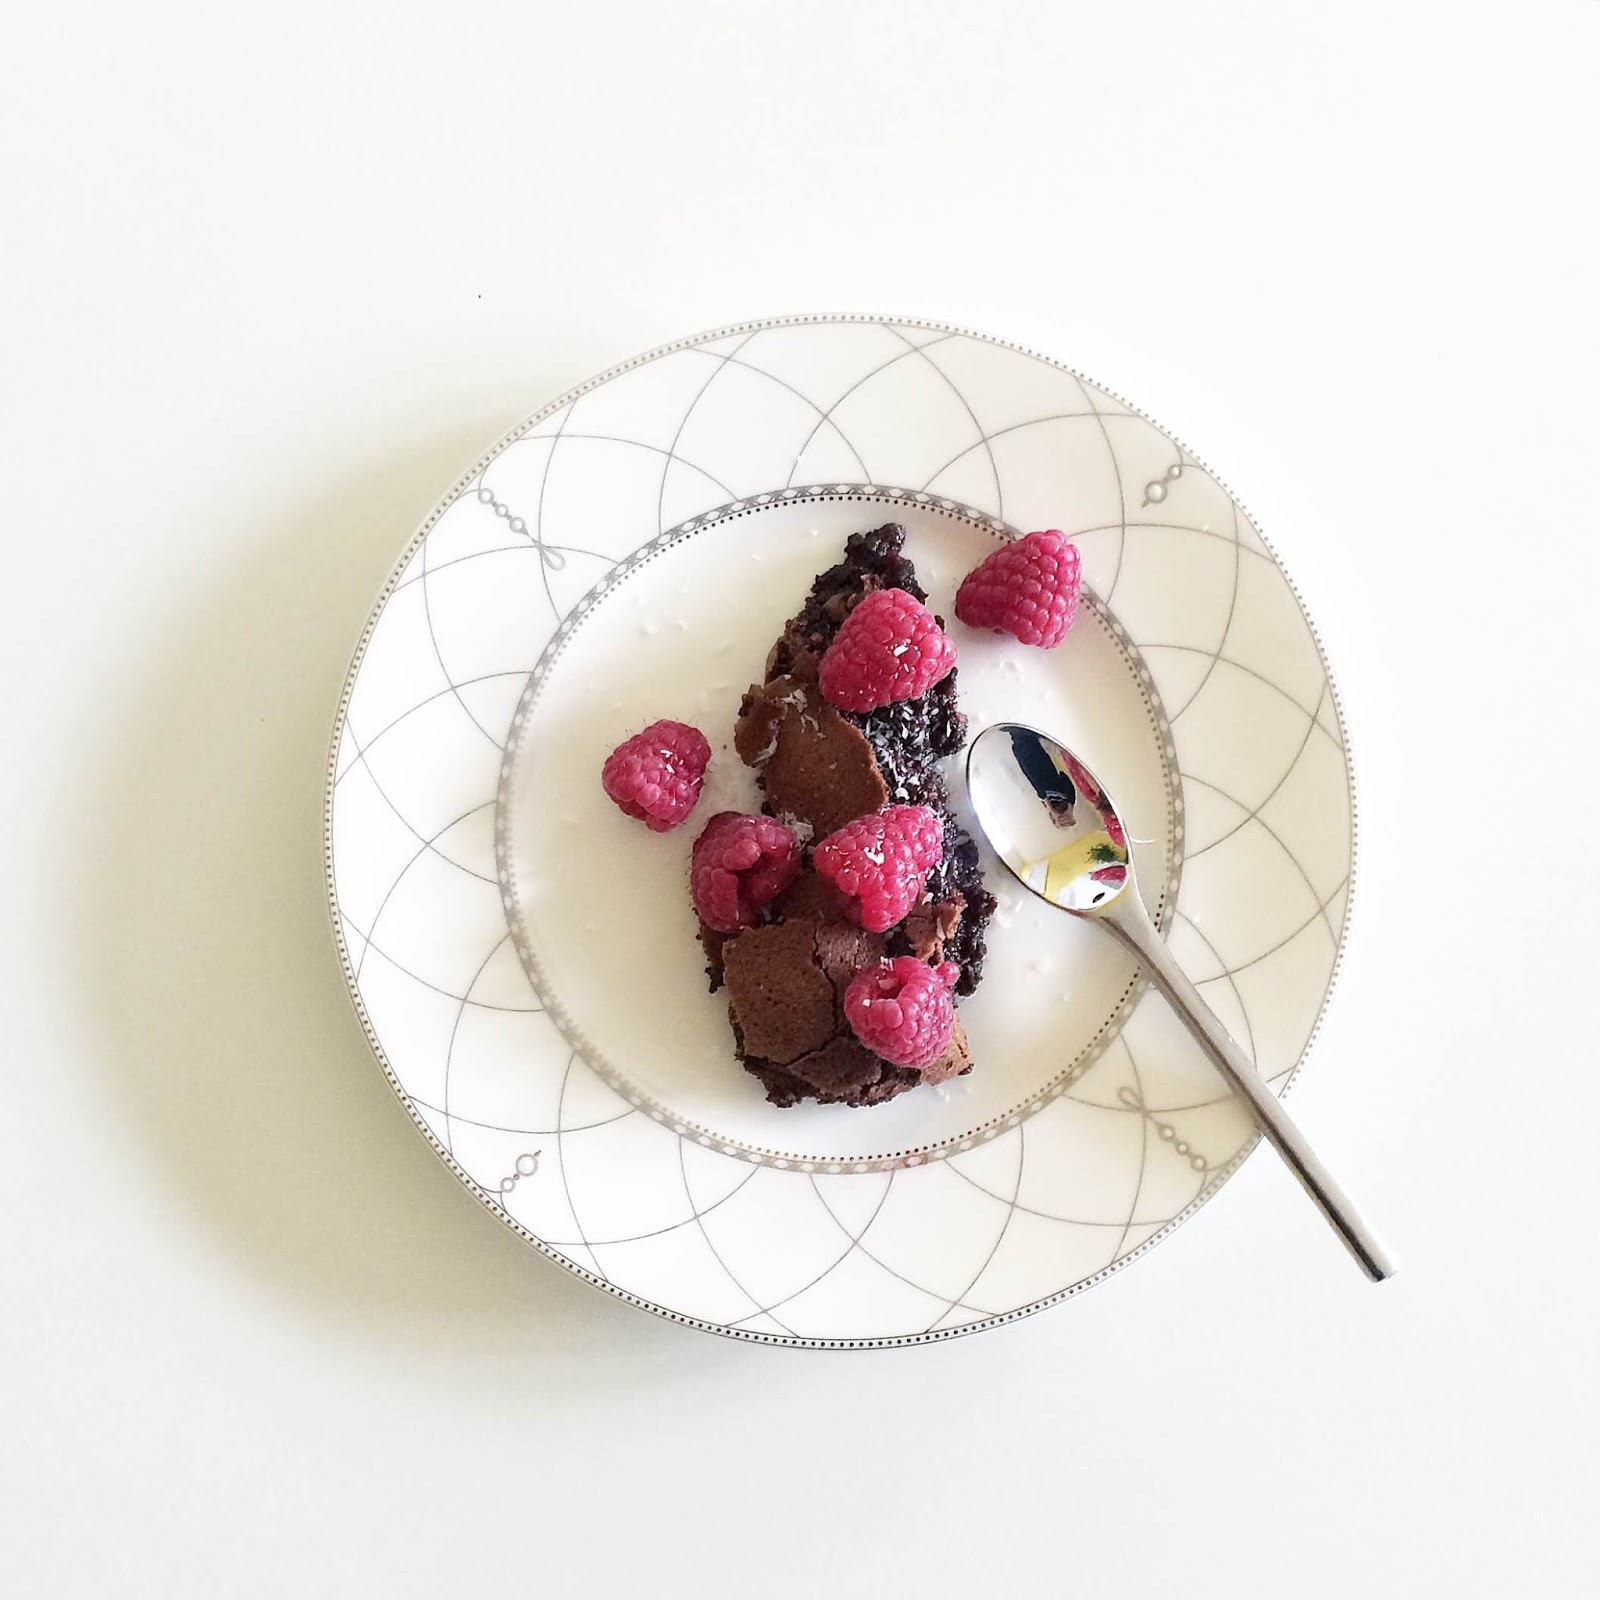 kristjaana mere healthy breakfast chocolate cake raspberries